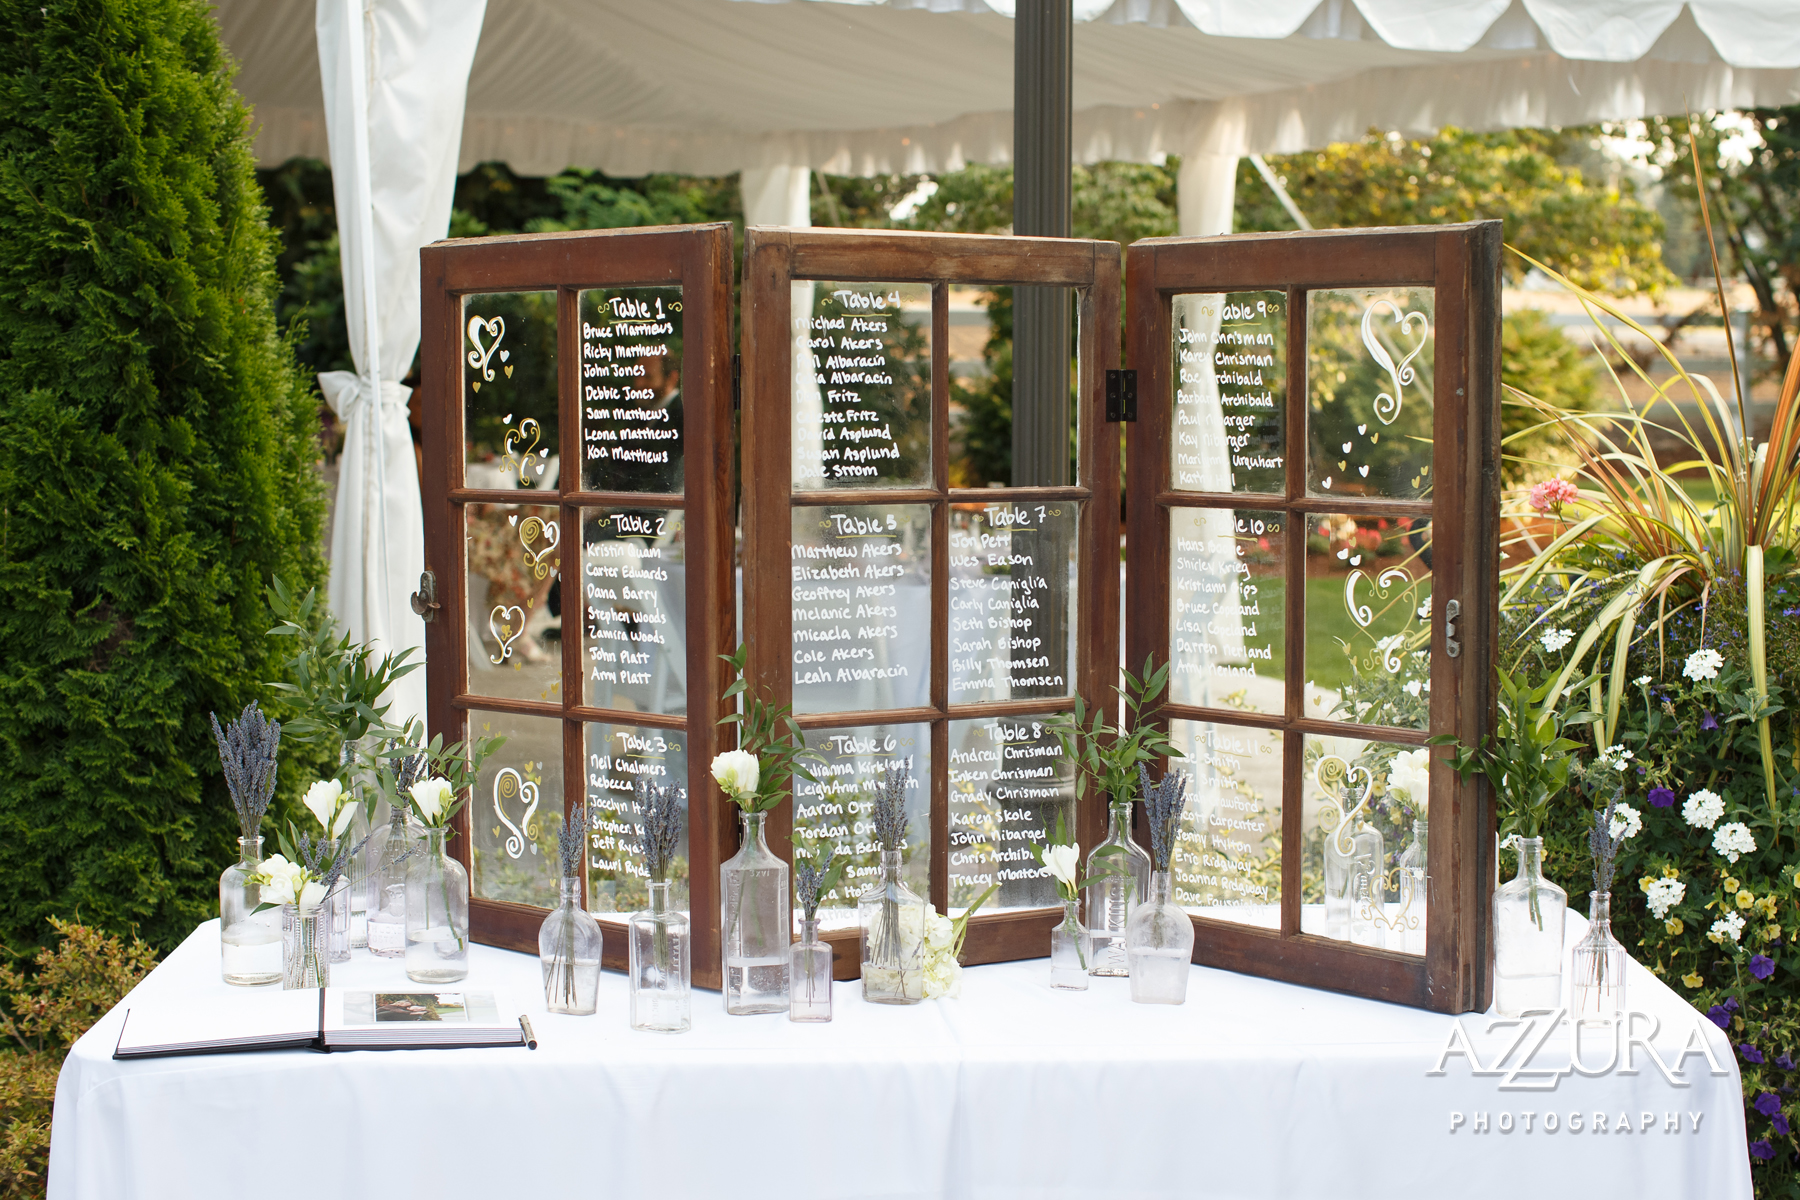 Laurel Creek Manor Wedding in Seattle | Window pane table assignments for wedding | Perfectly Posh Events, Seattle Wedding Planner | Azzura Photography